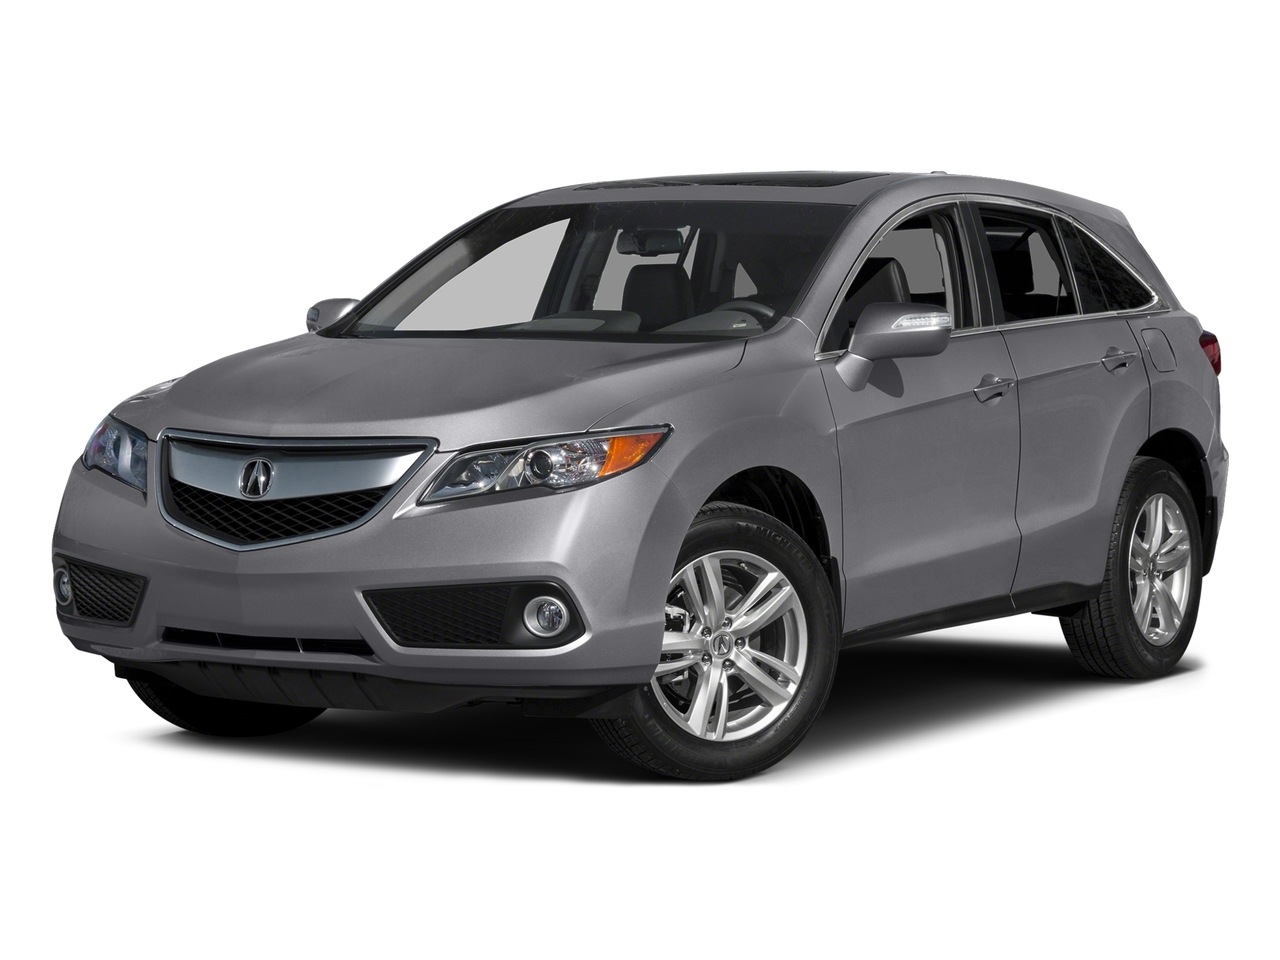 2015 Acura RDX TECHNOLOGY PACKAGE SUV Slide